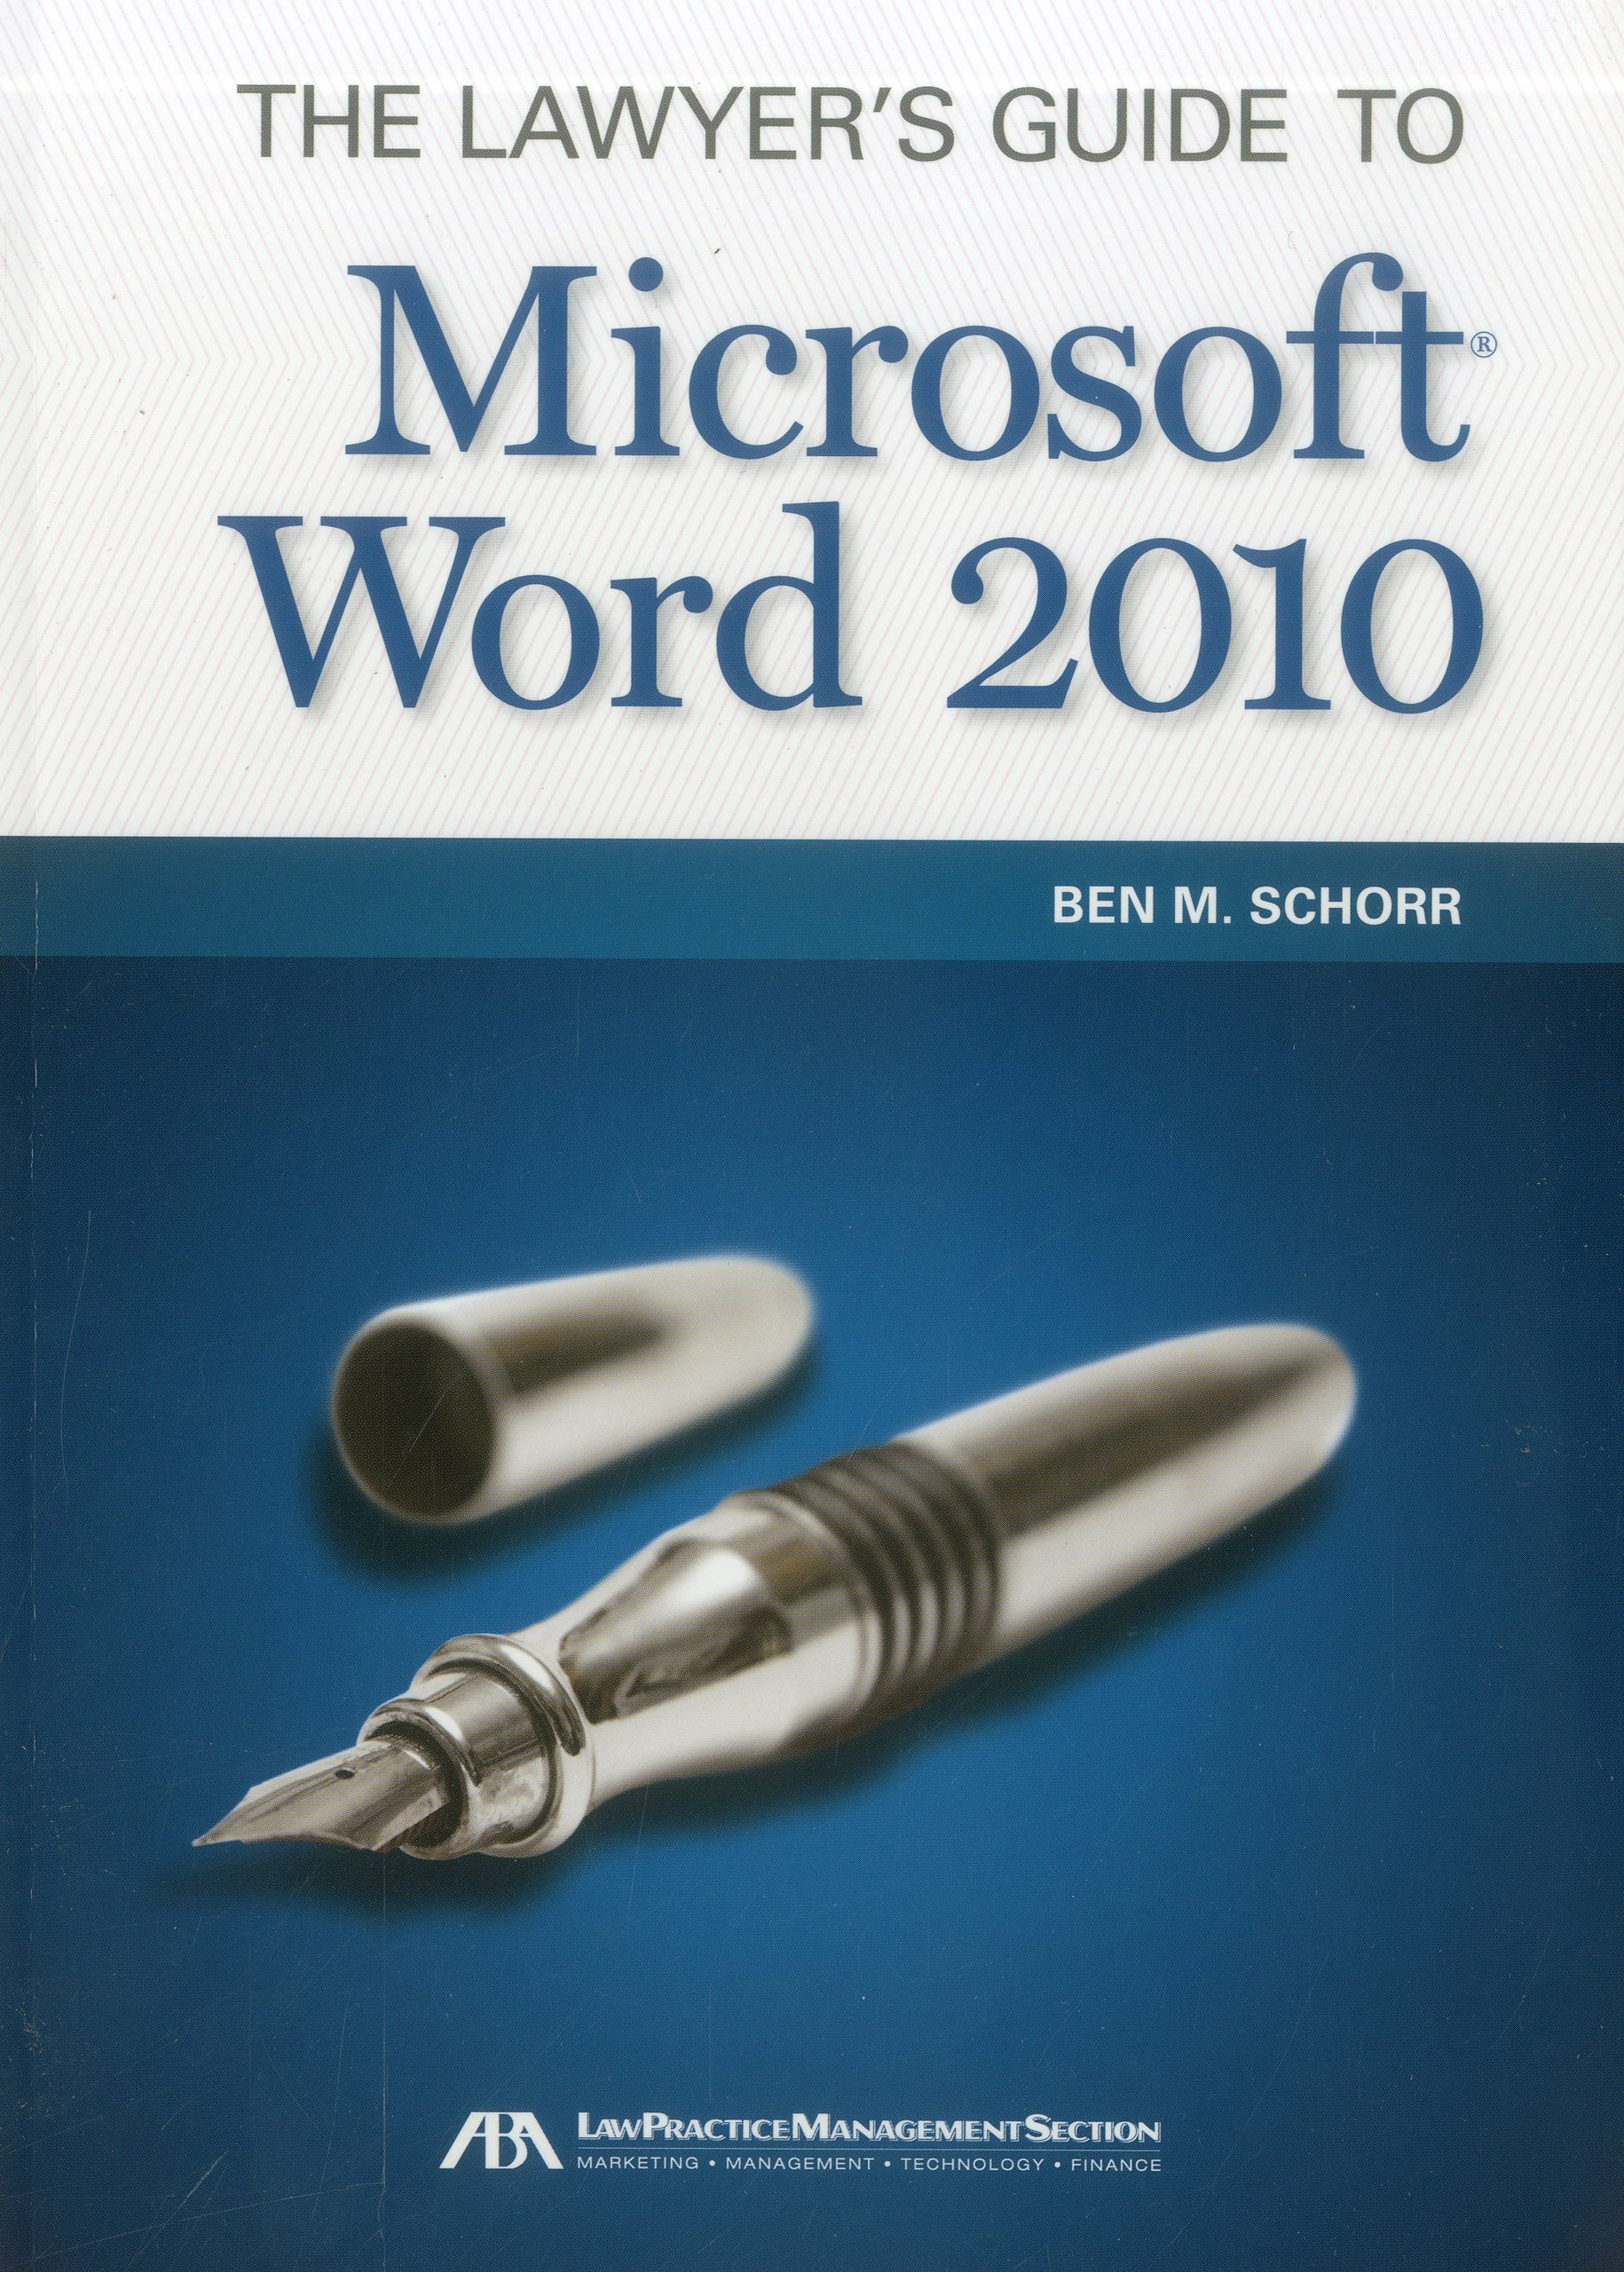 The Lawyer's Guide to Microsoft Word 2010 pdf